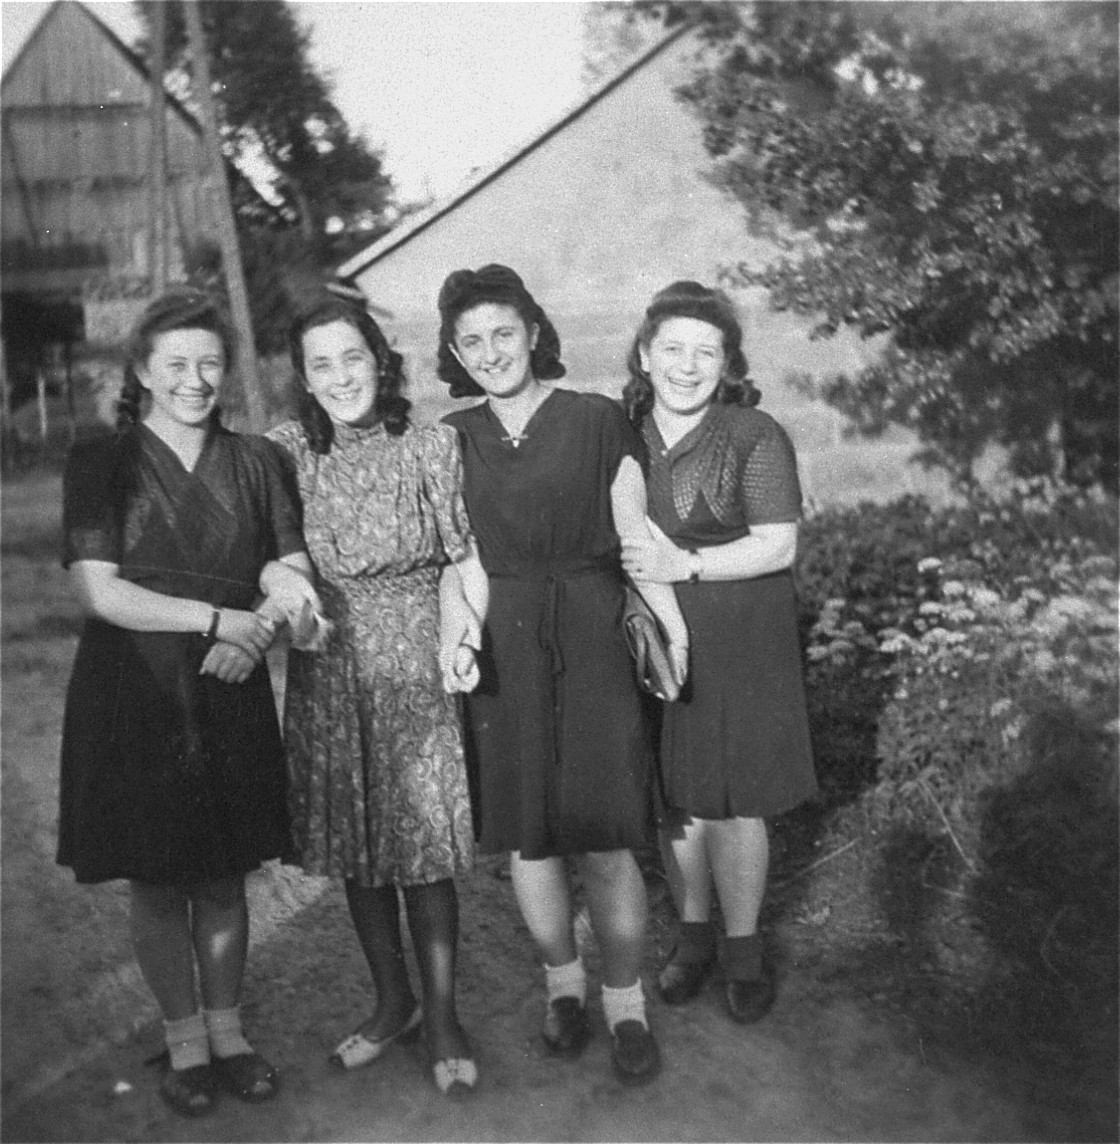 Four young Jewish women who were recently liberated from the Schatzlar labor camp, pose outside in front of a group of buildings.  Pictured from left to right are:  Pola Herscovicz (from Sosnowiec), Gusta Fiszgrund (from Crzanow), unknown, and Herscovicz (from Sosnowiec).